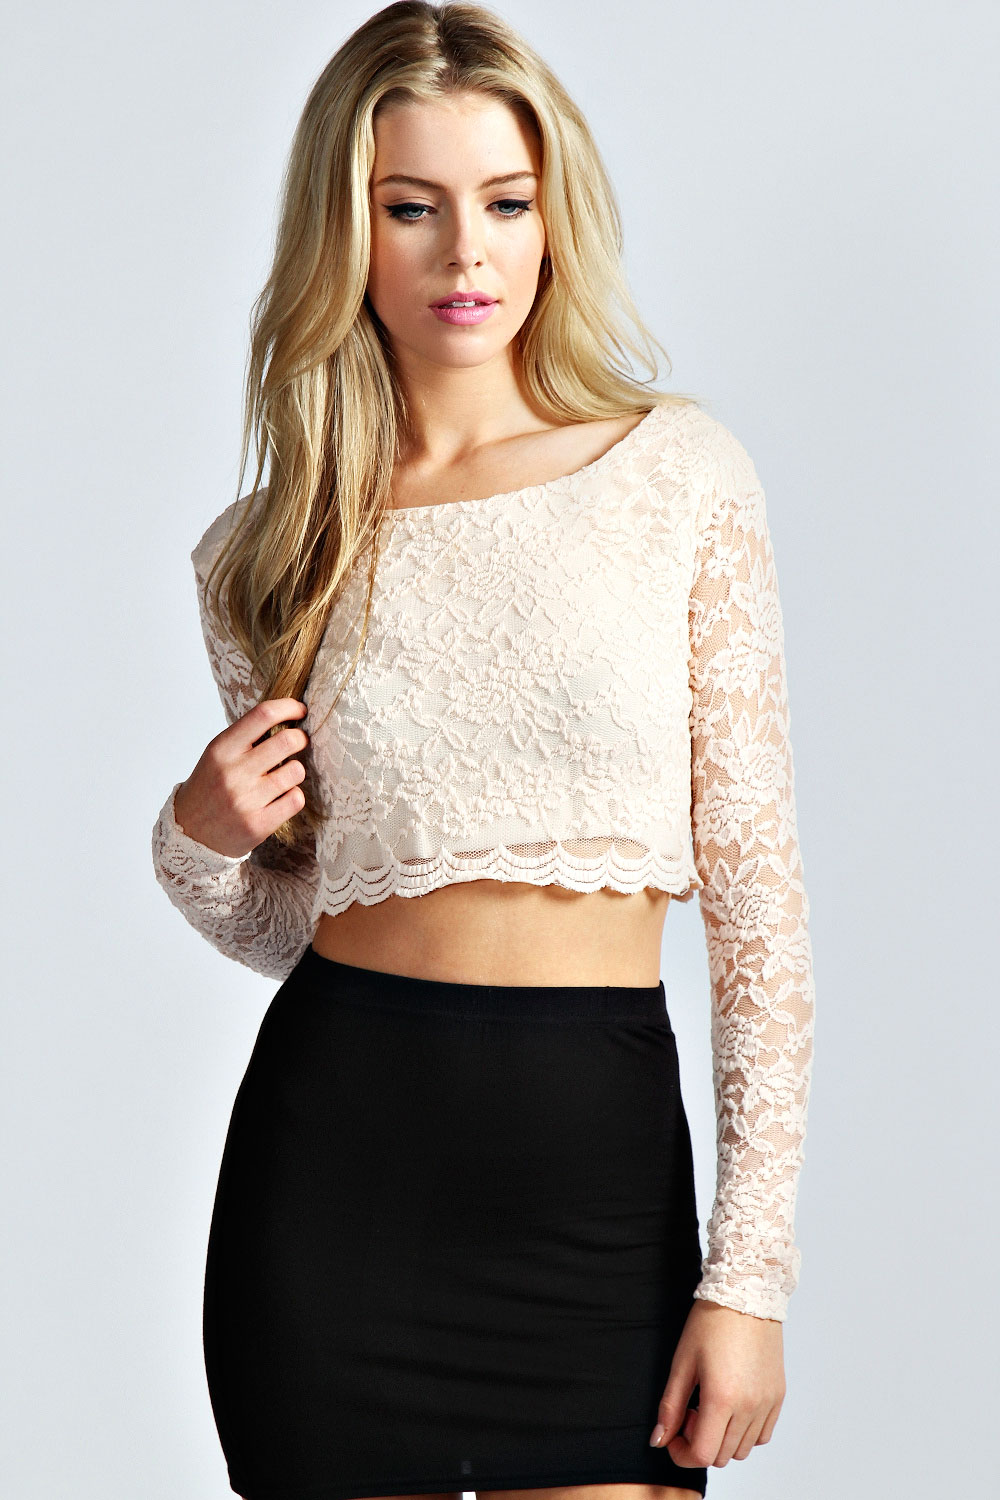 The crop top is really cute, hitting on a really good spot for me (just about the end of my rib cage and I'm 5'11). The material is nice, the lining is pretty and it is off shoulder and it's perfect for summer.